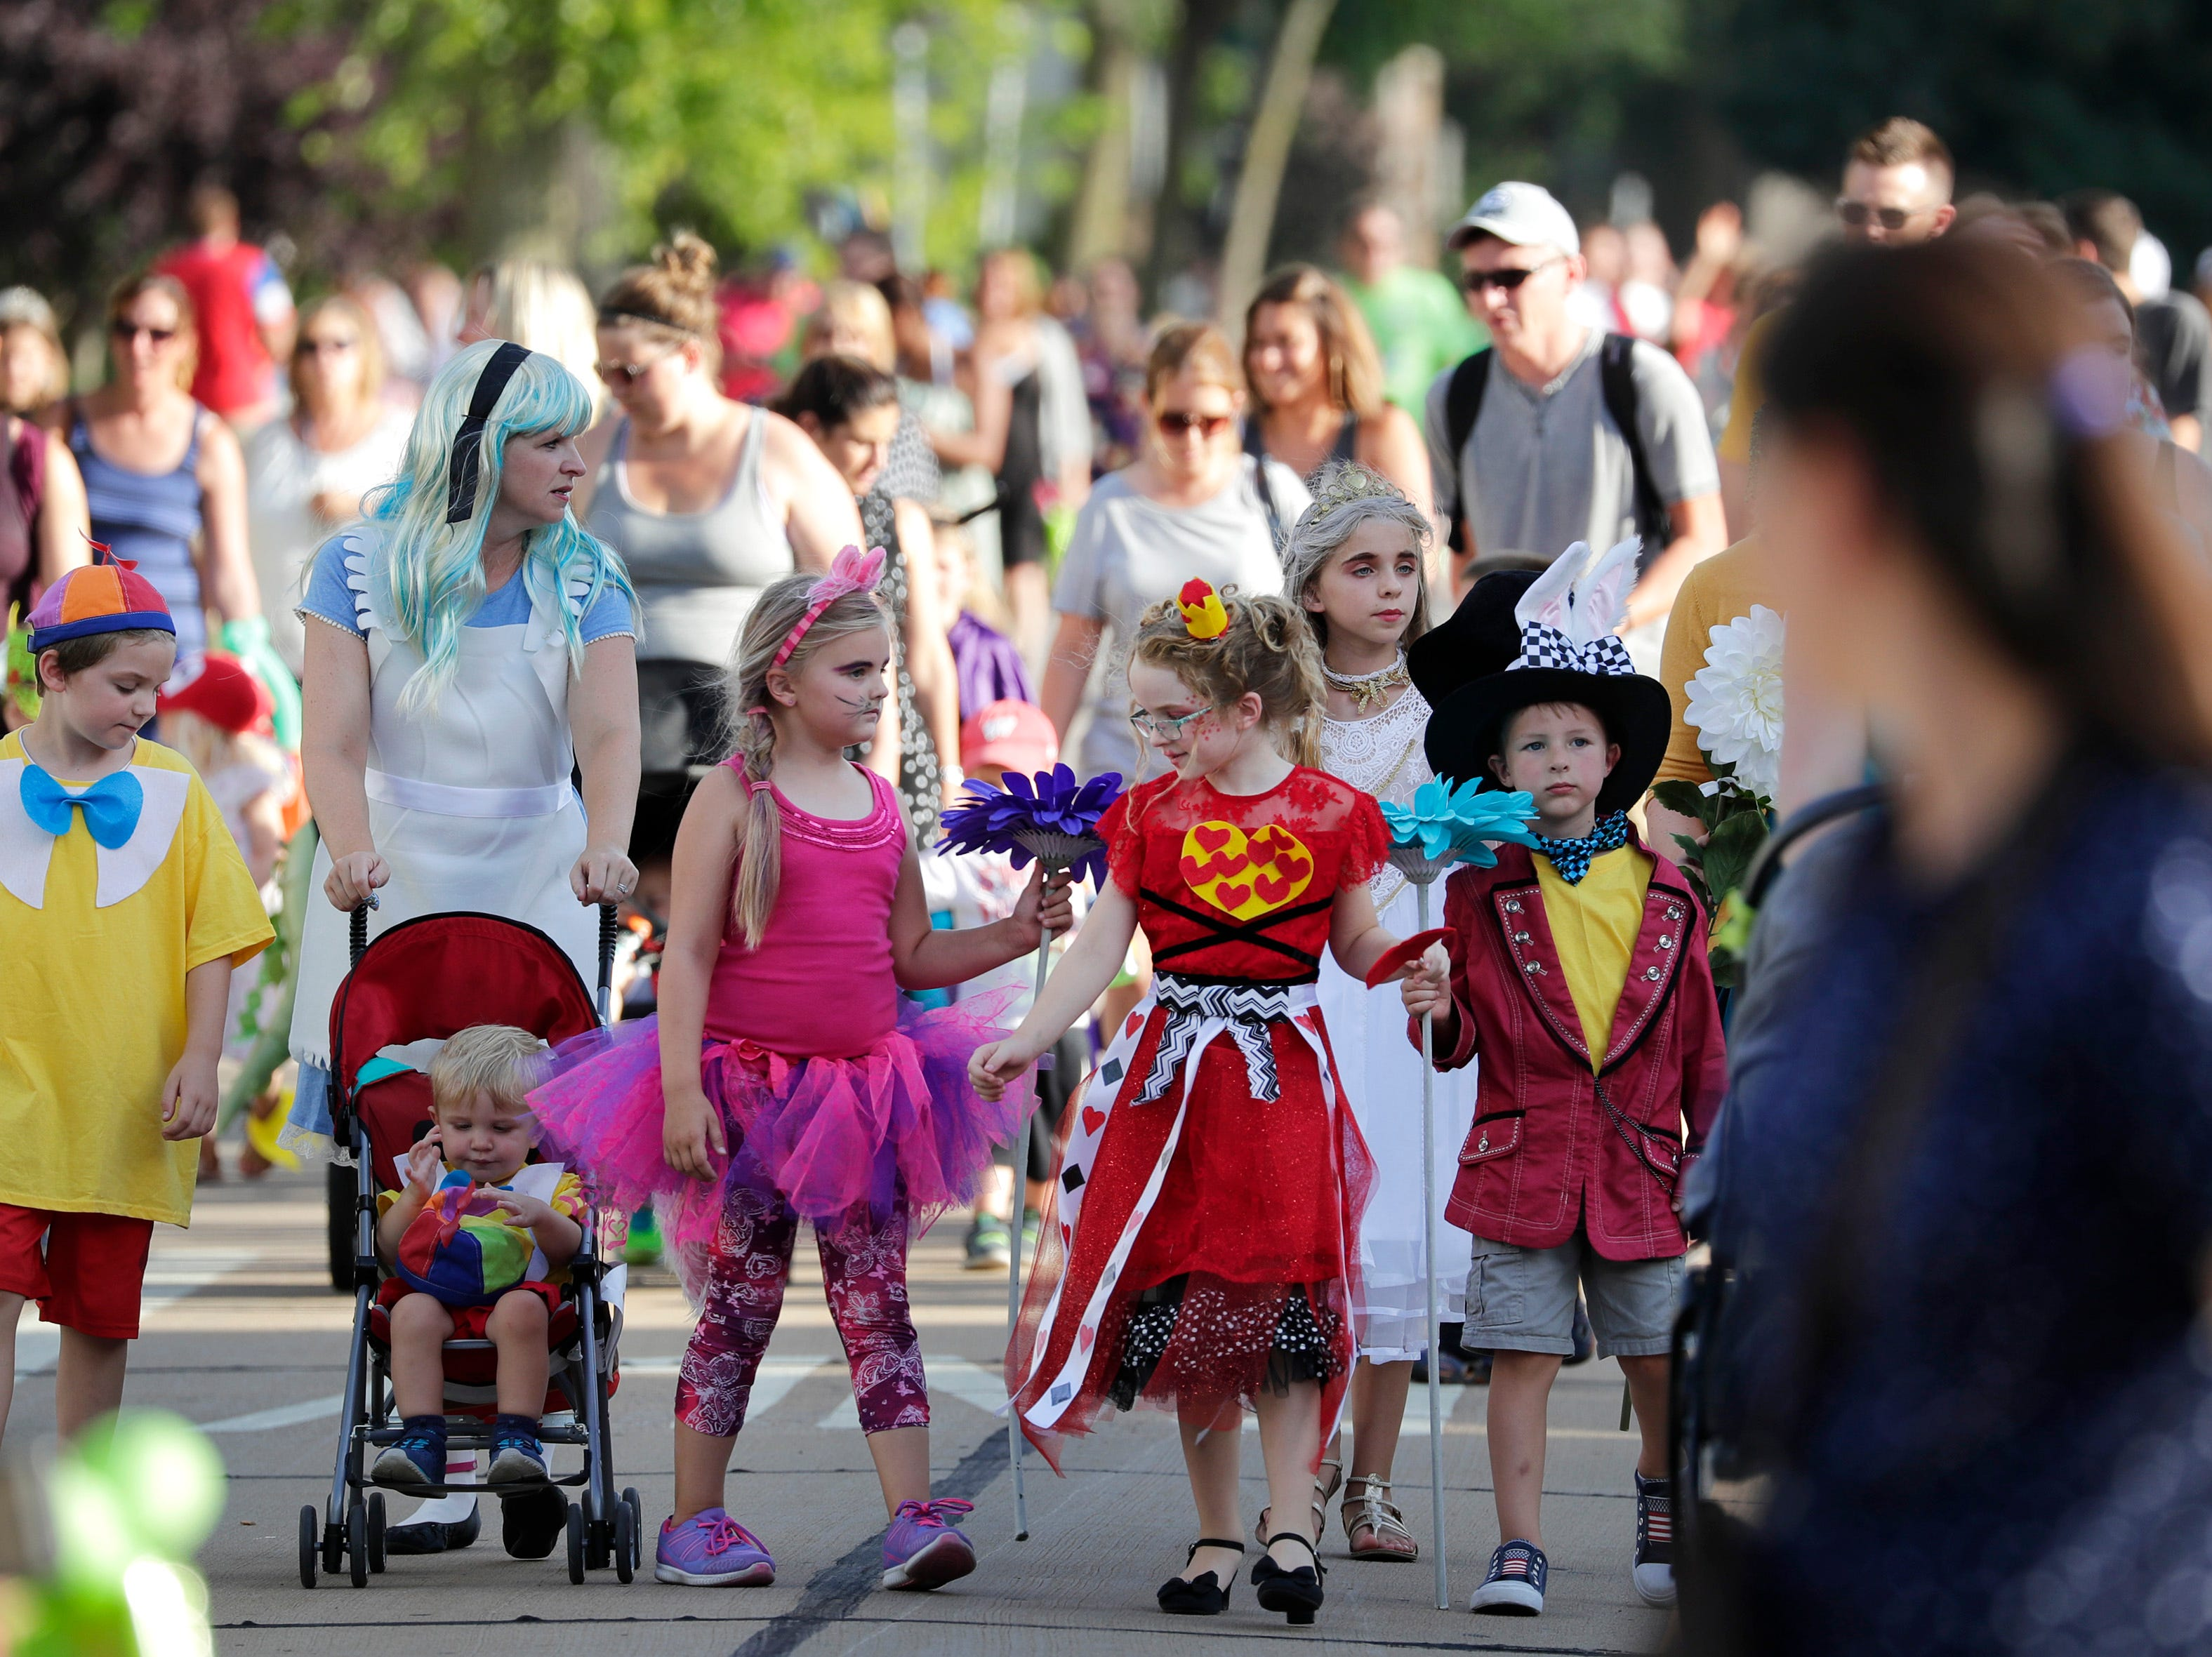 The 10th annual ChildrenÕs Parade Wednesday, July 25, 2018, in Appleton, Wis. Danny Damiani/USA TODAY NETWORK-Wisconsin